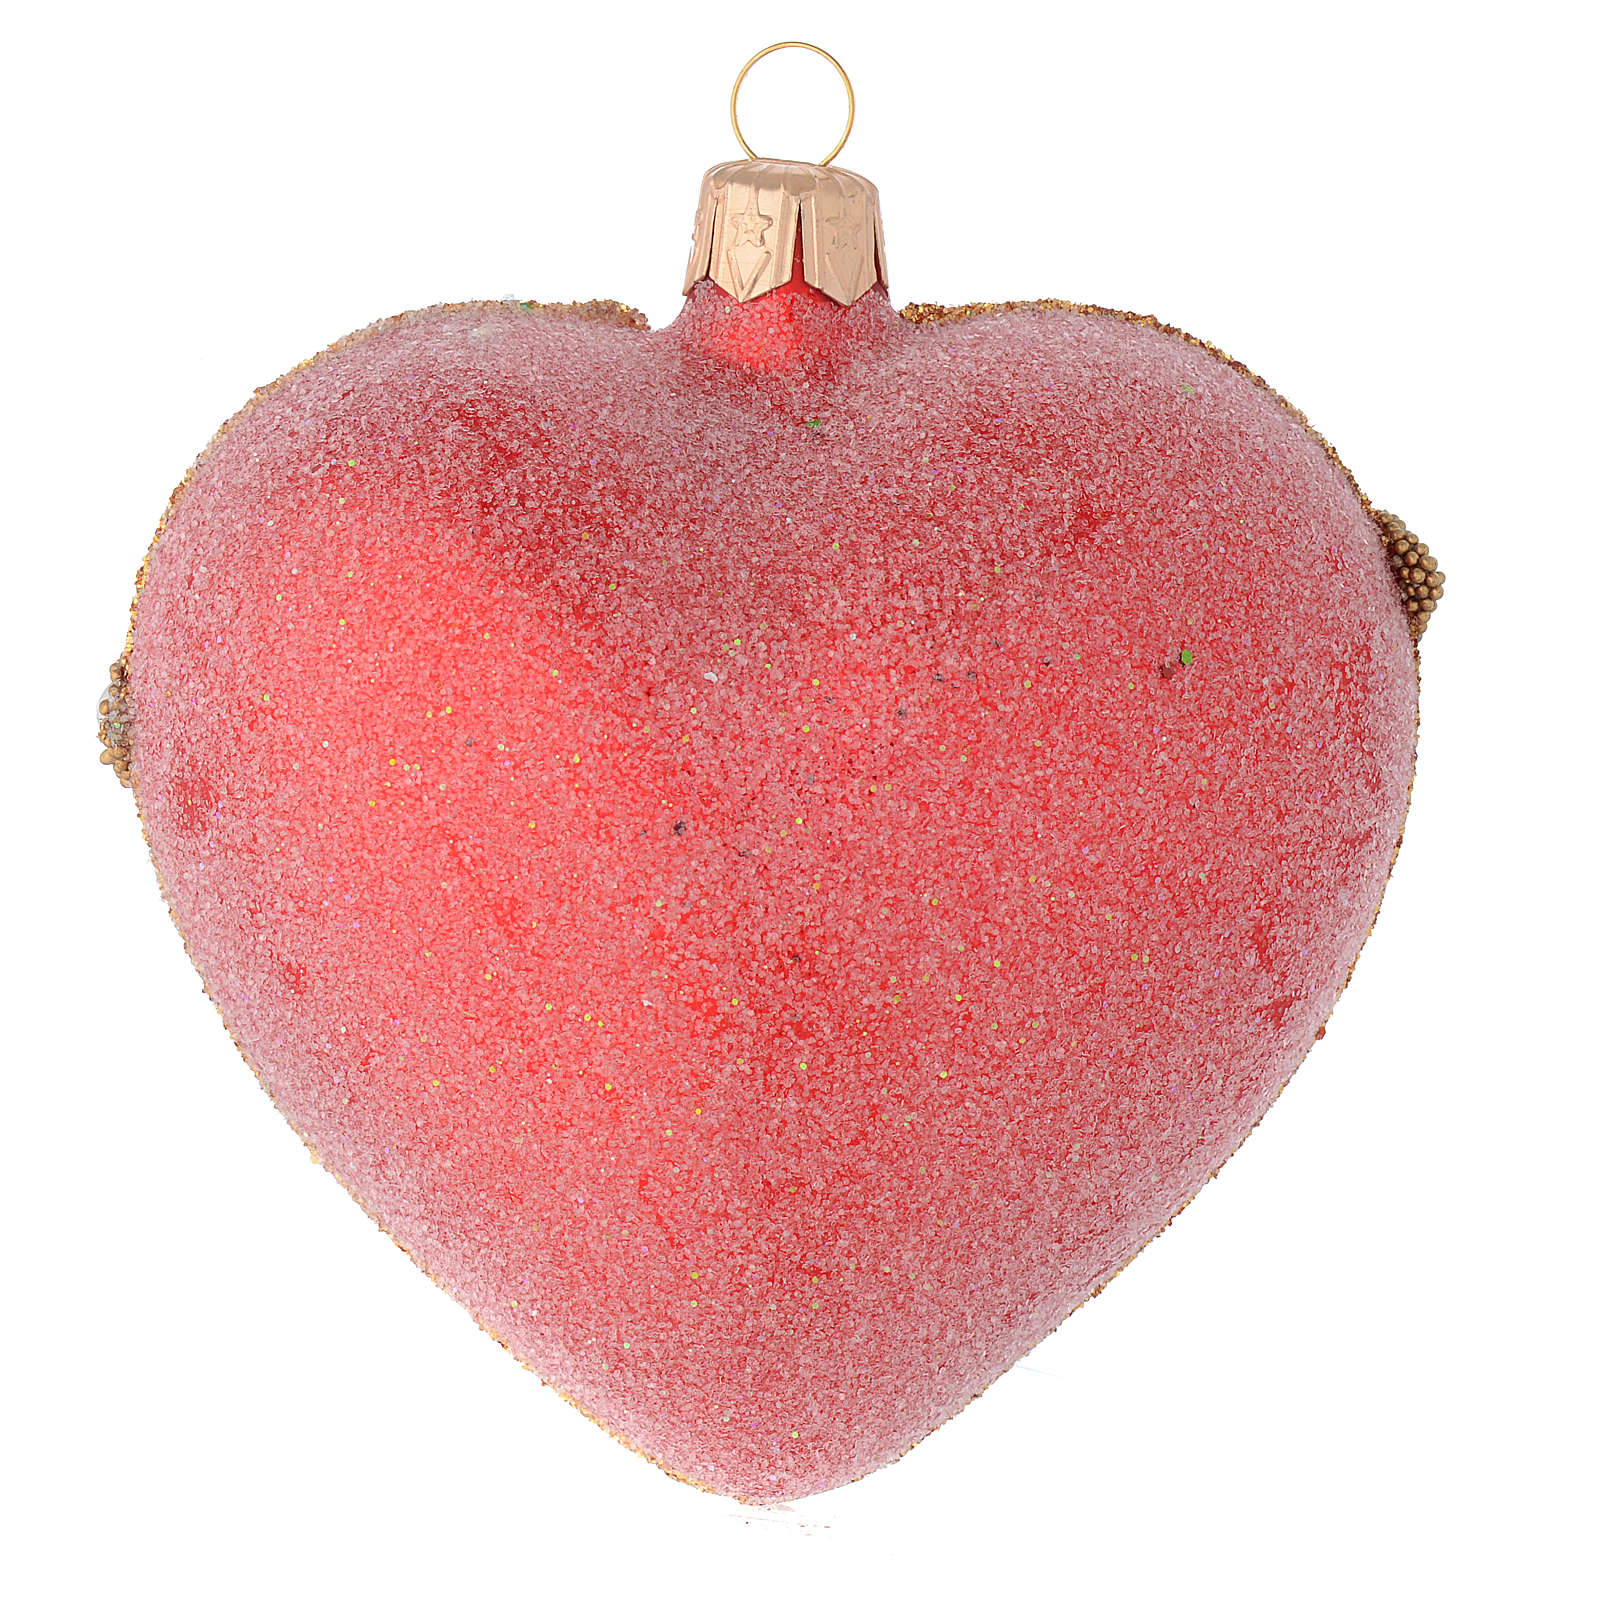 Heart Shaped bauble in red blown glass with pearls and gold decorations 100mm 4